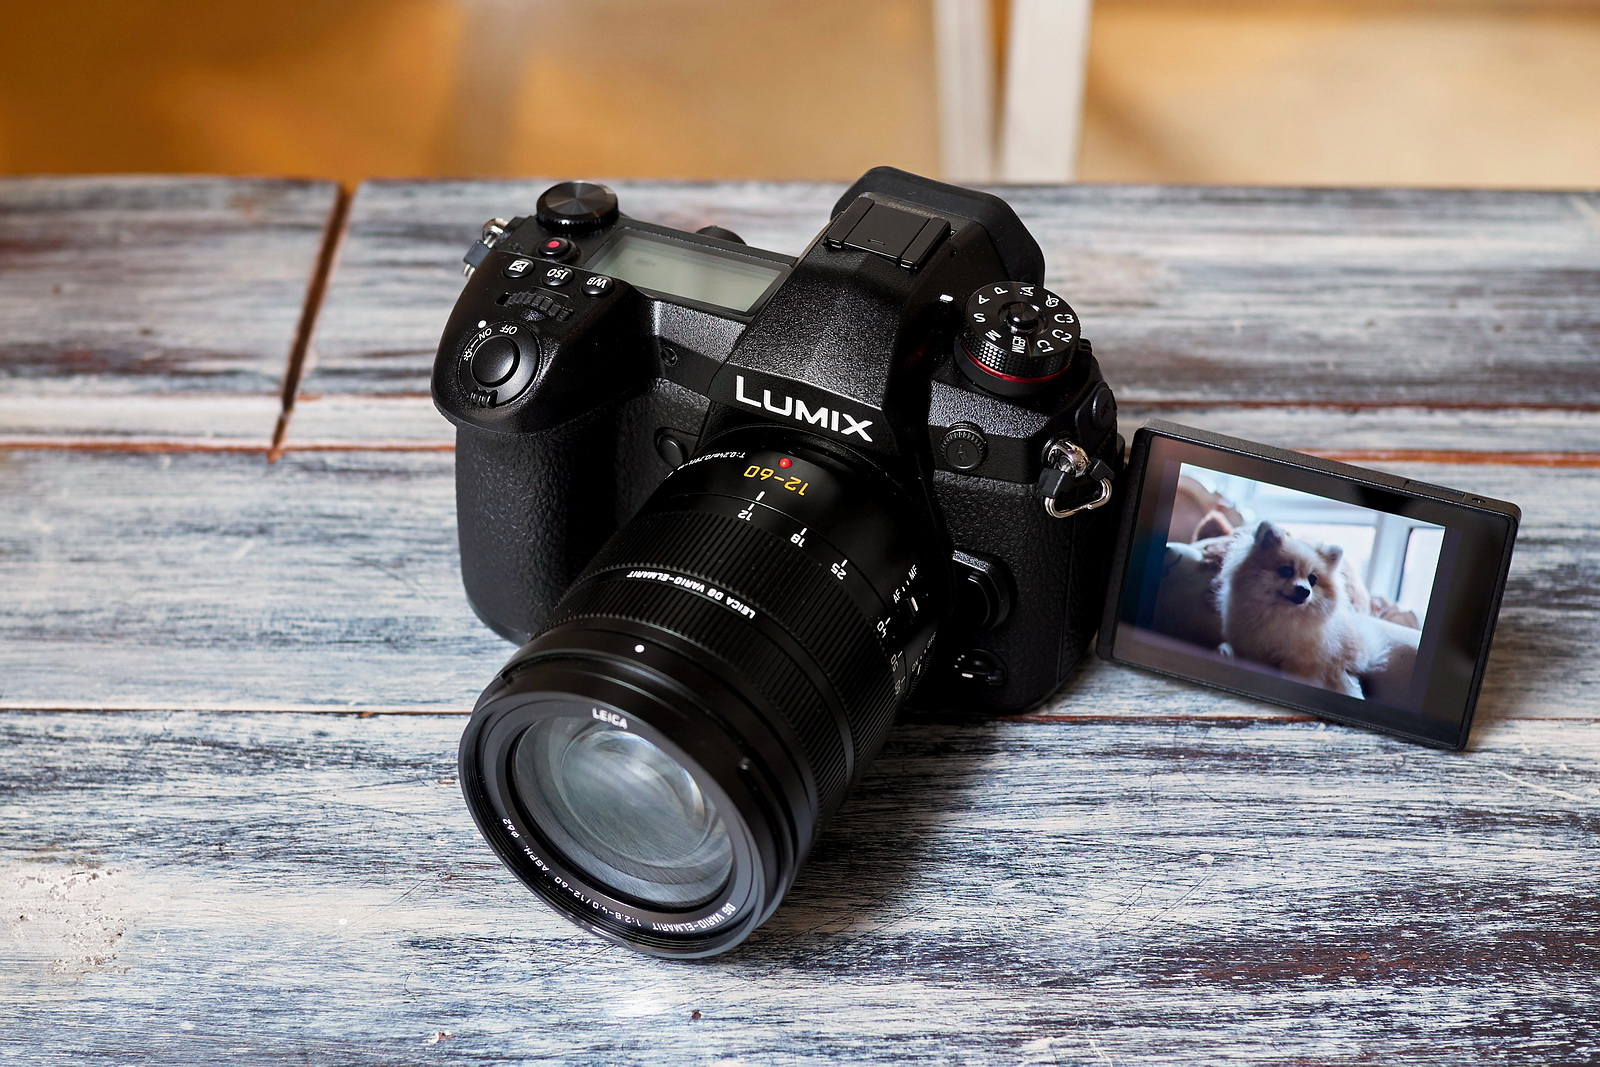 Review: the 2018 Panasonic Lumix G9 – Ming Thein | Photographer